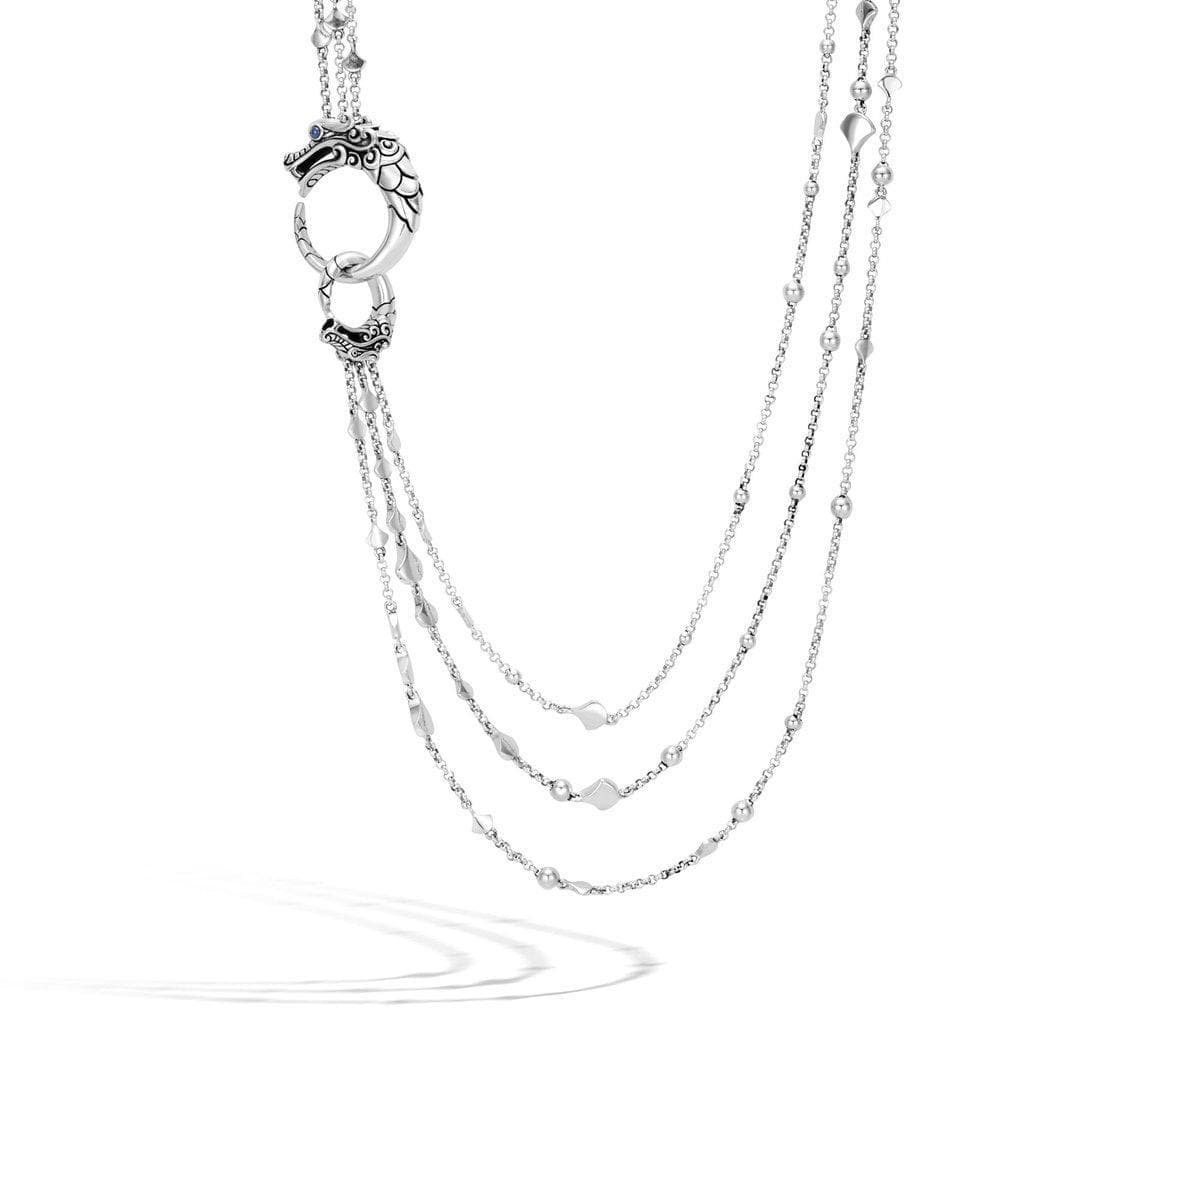 Legends Naga Multi Row Necklace - NBS6639BSP-John Hardy-Renee Taylor Gallery